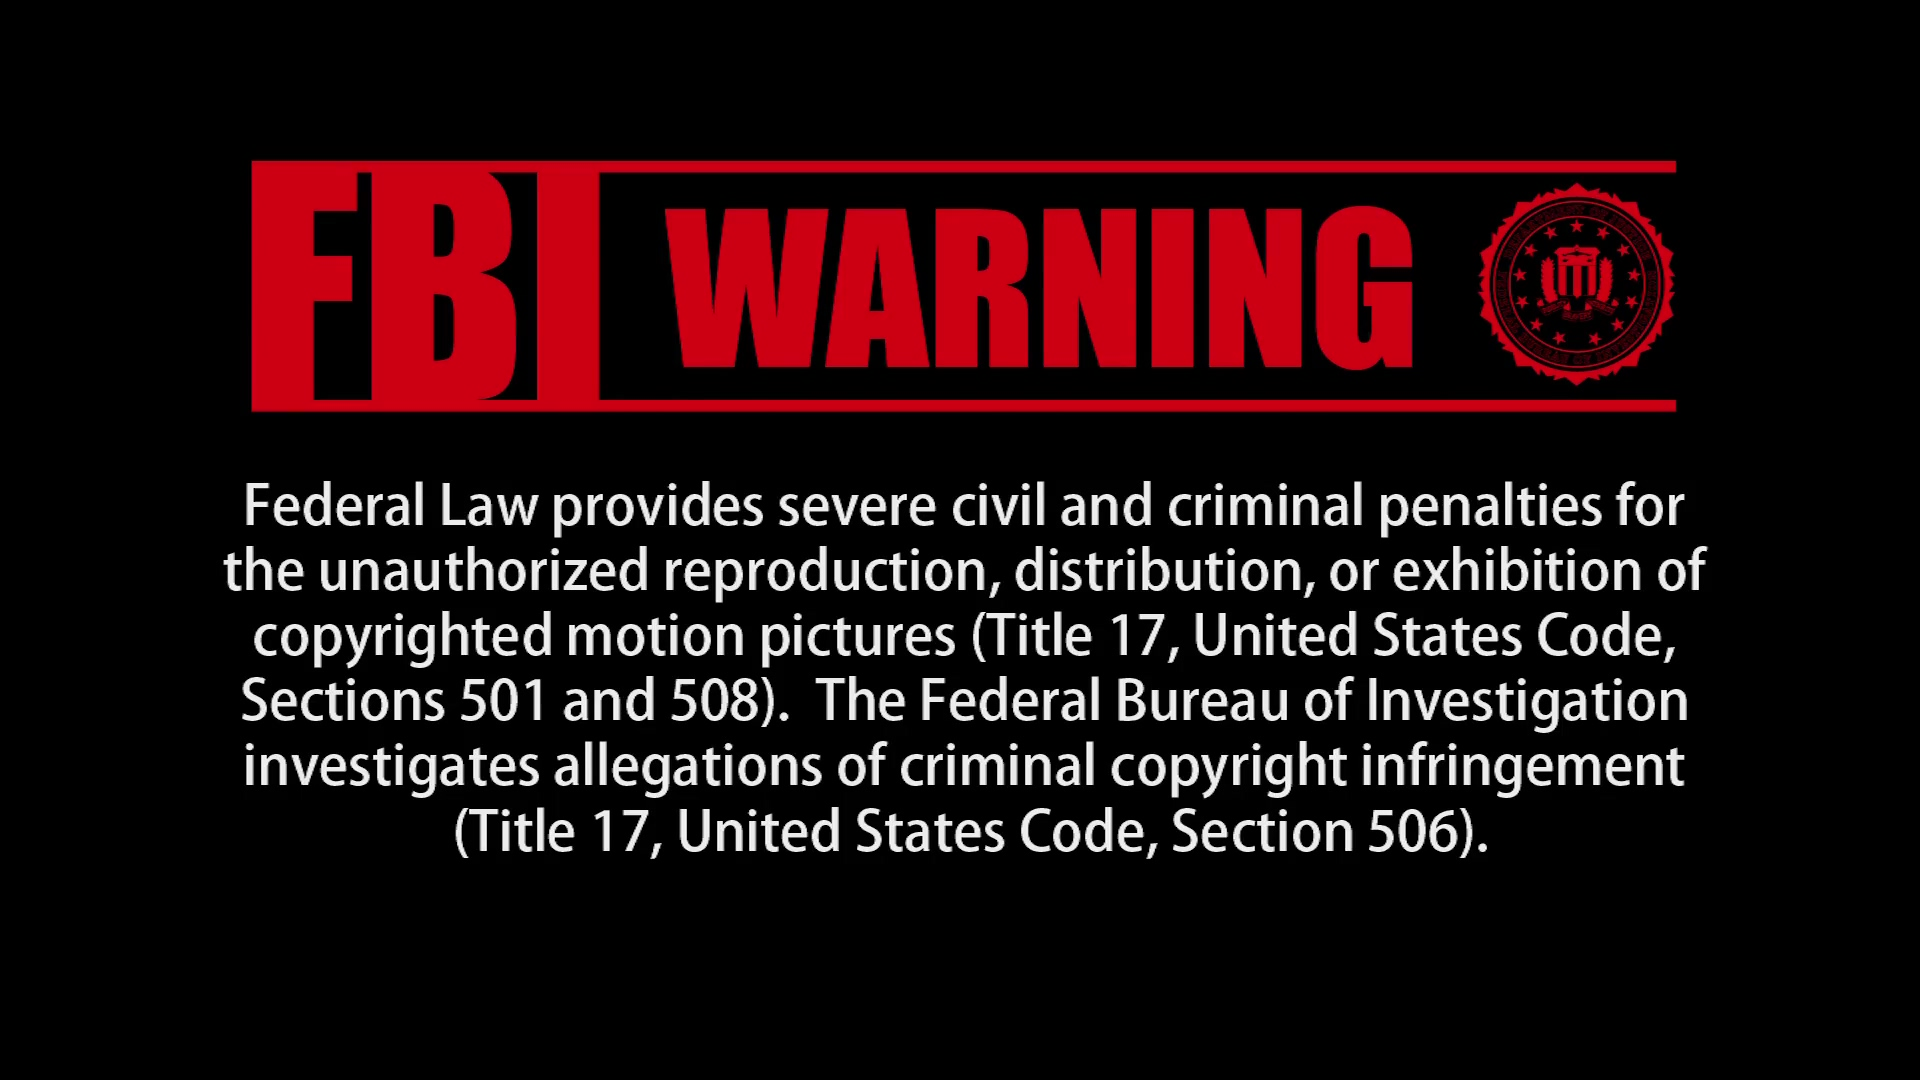 fbi warning: